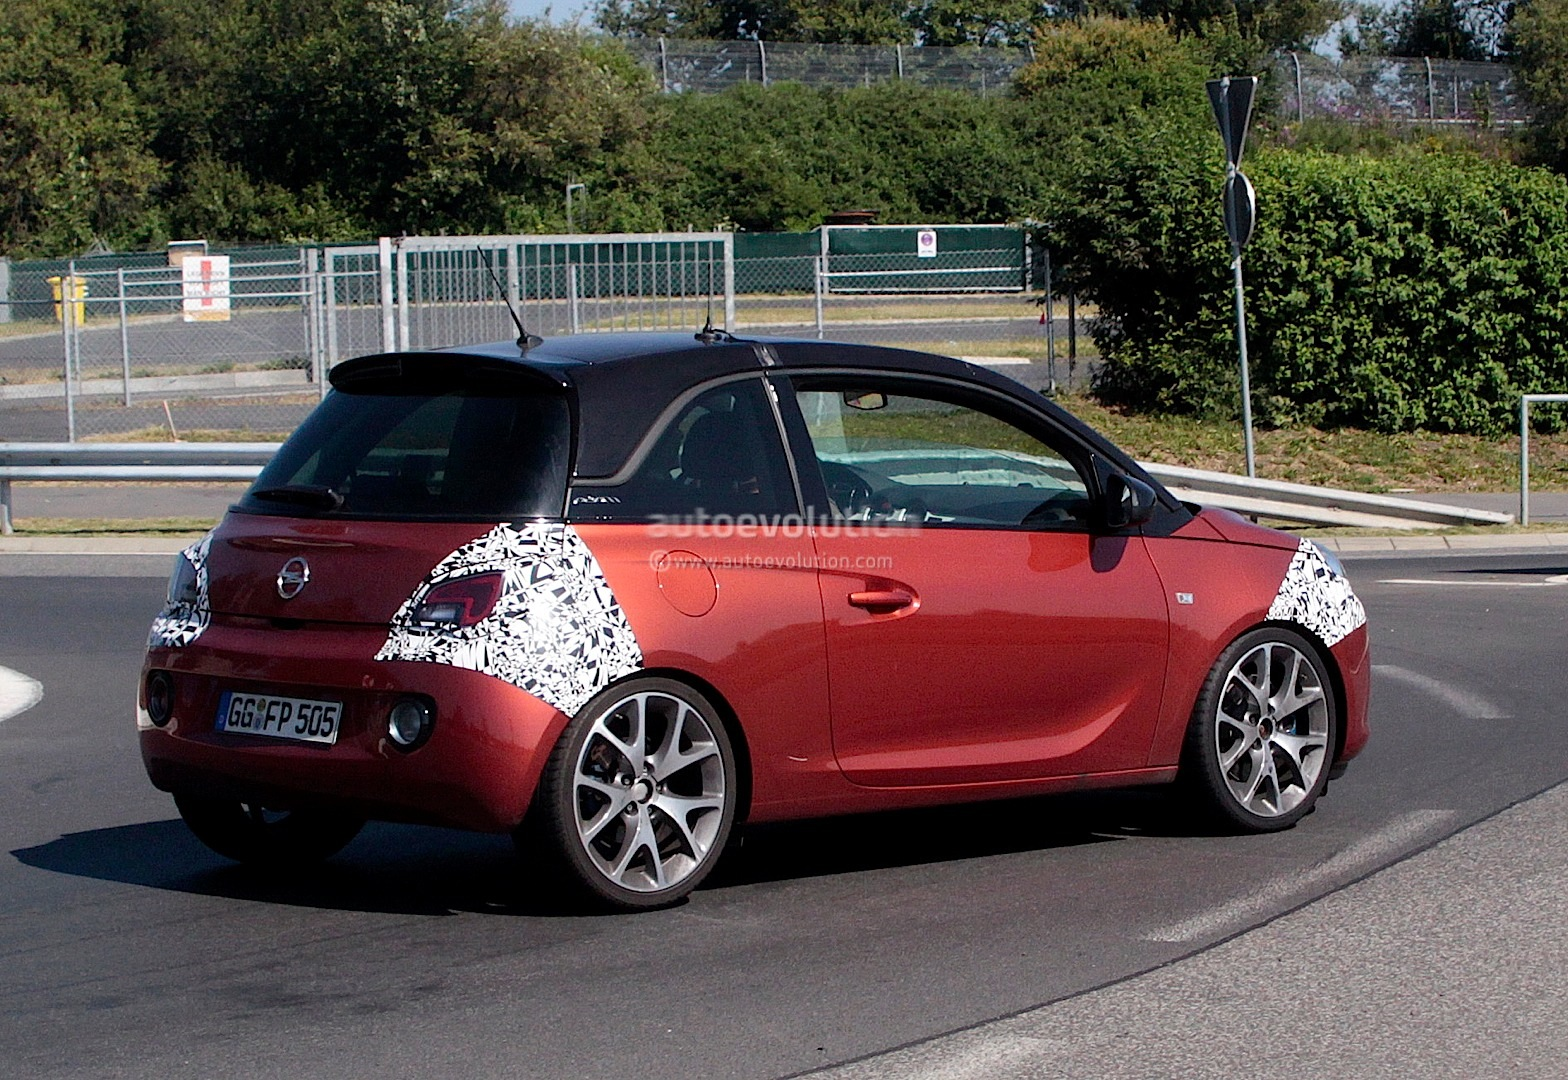 Spyshots Opel Adam Opc Or New Sidi Turbo Autoevolution